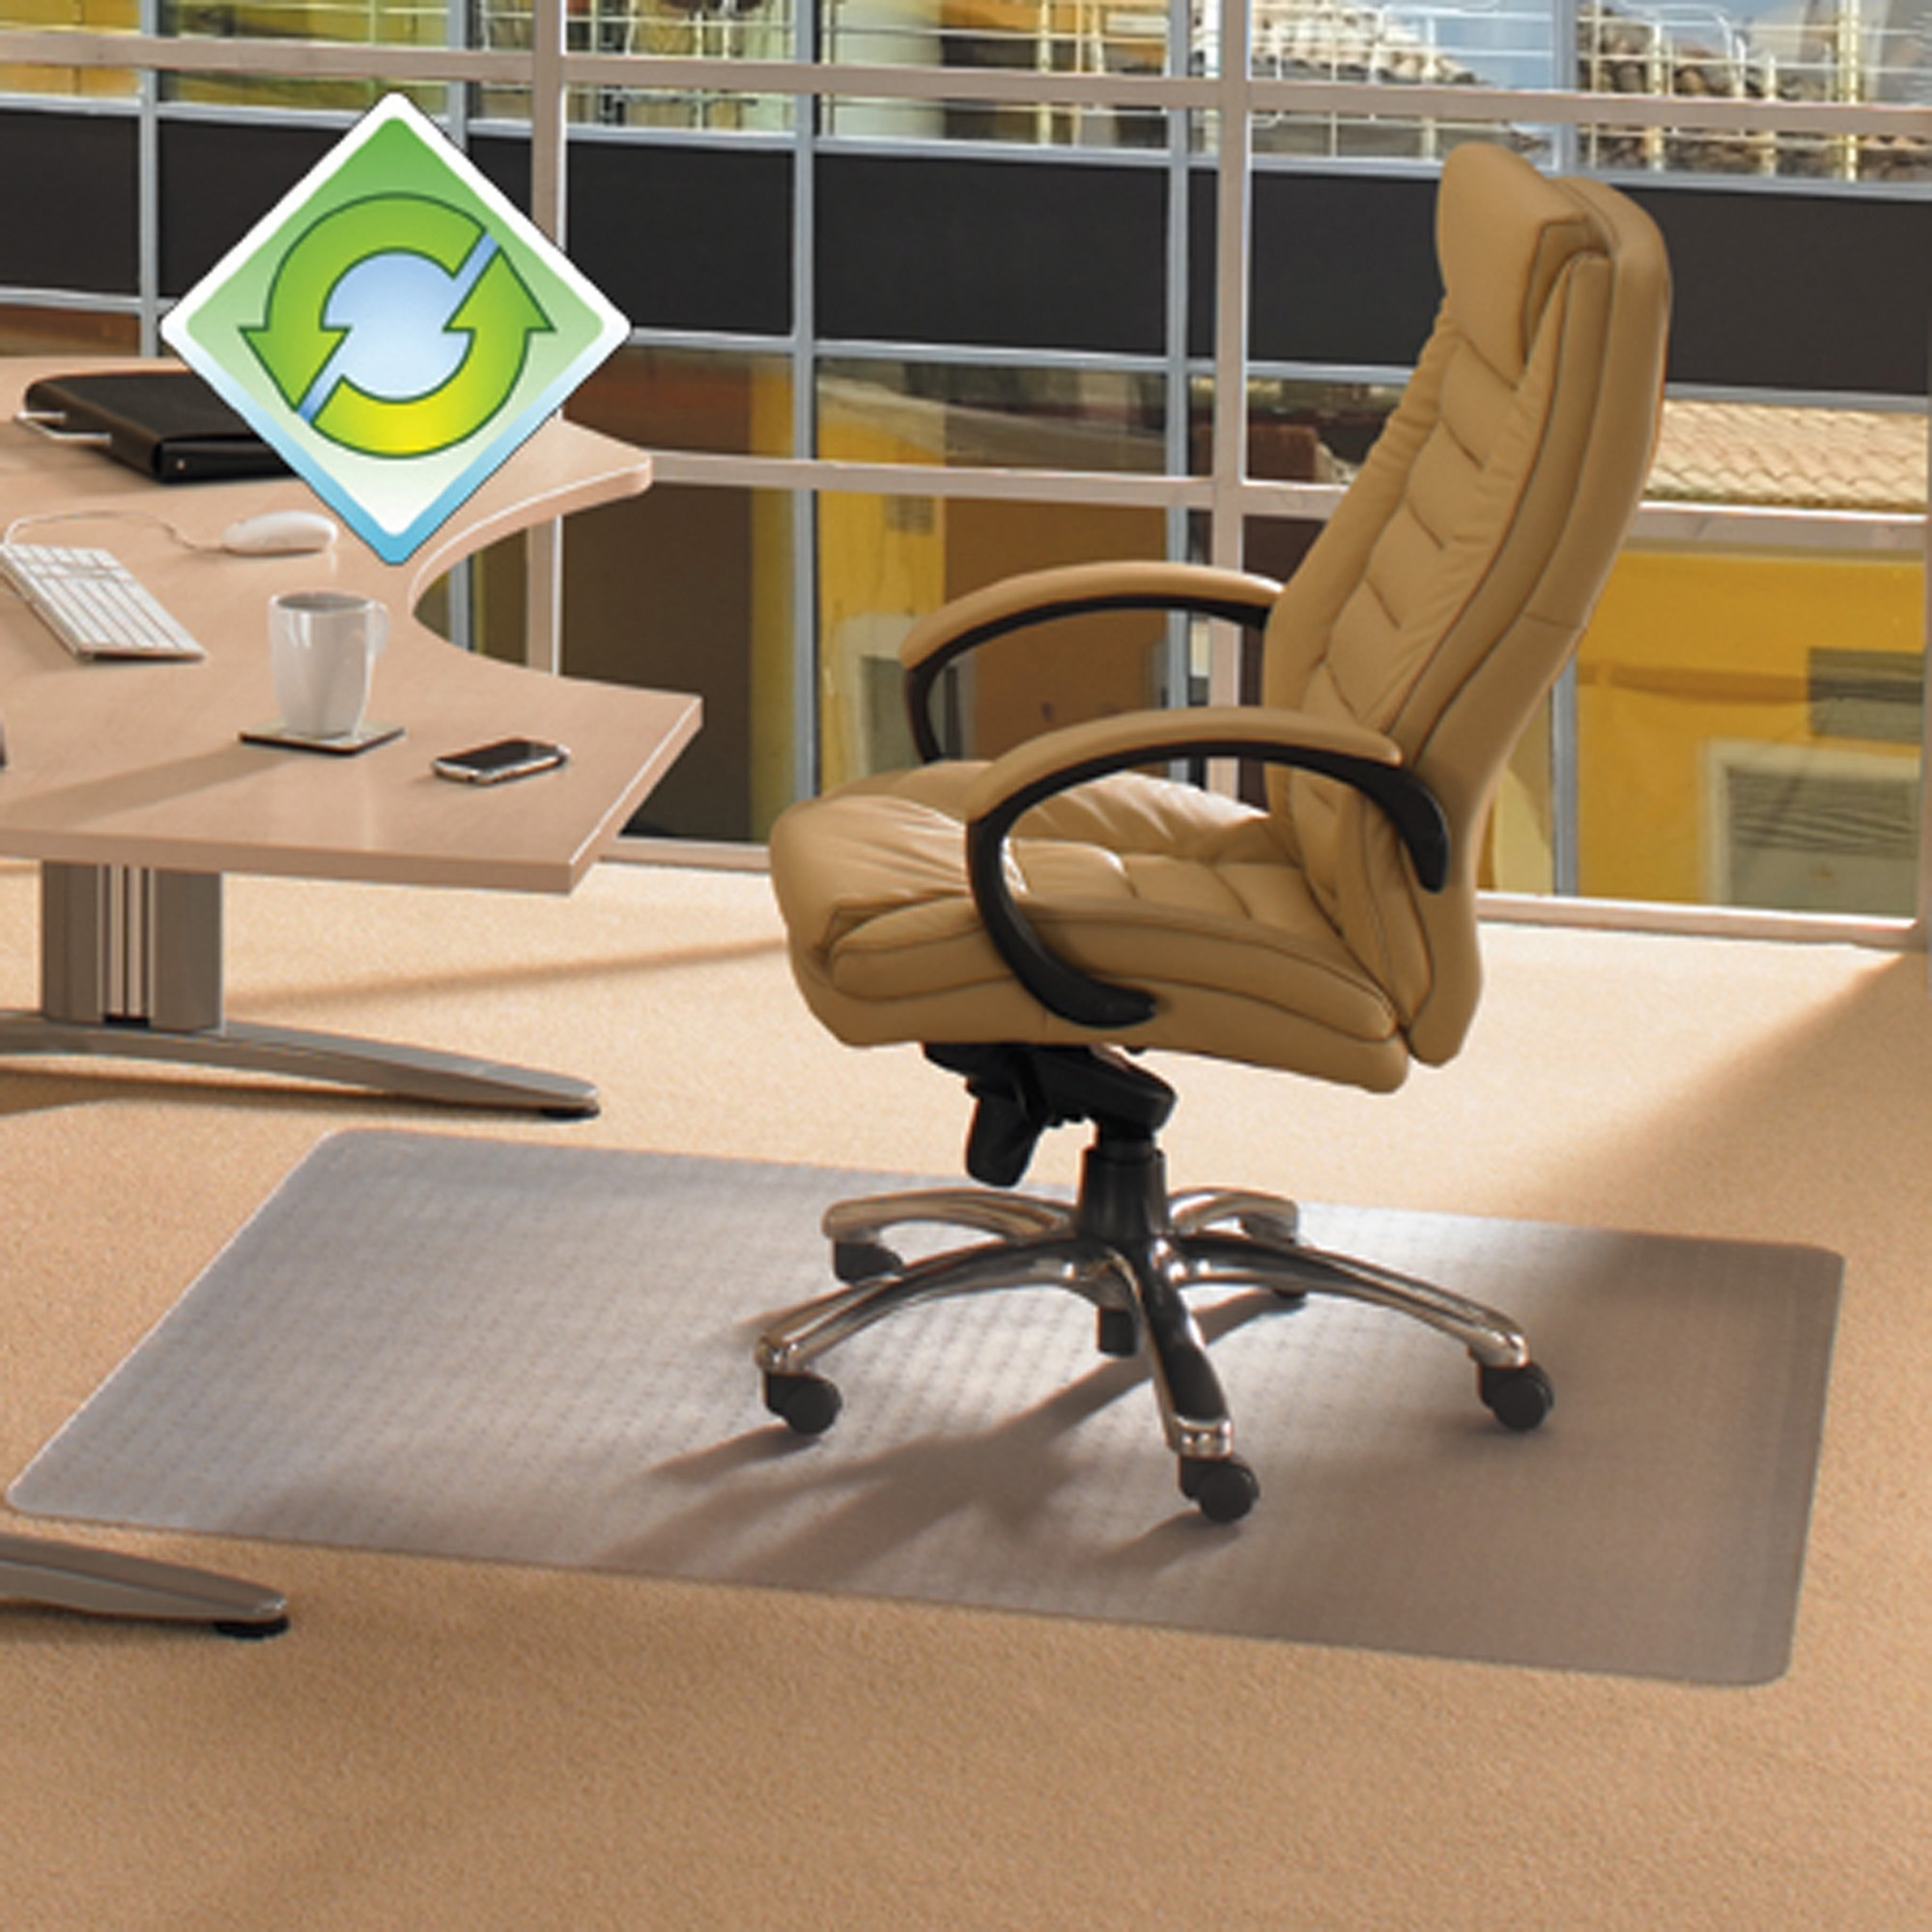 Ecotex, FLRECO113048EP, Evolutionmat Standard Pile Chair Mat, 1 Each, Clear